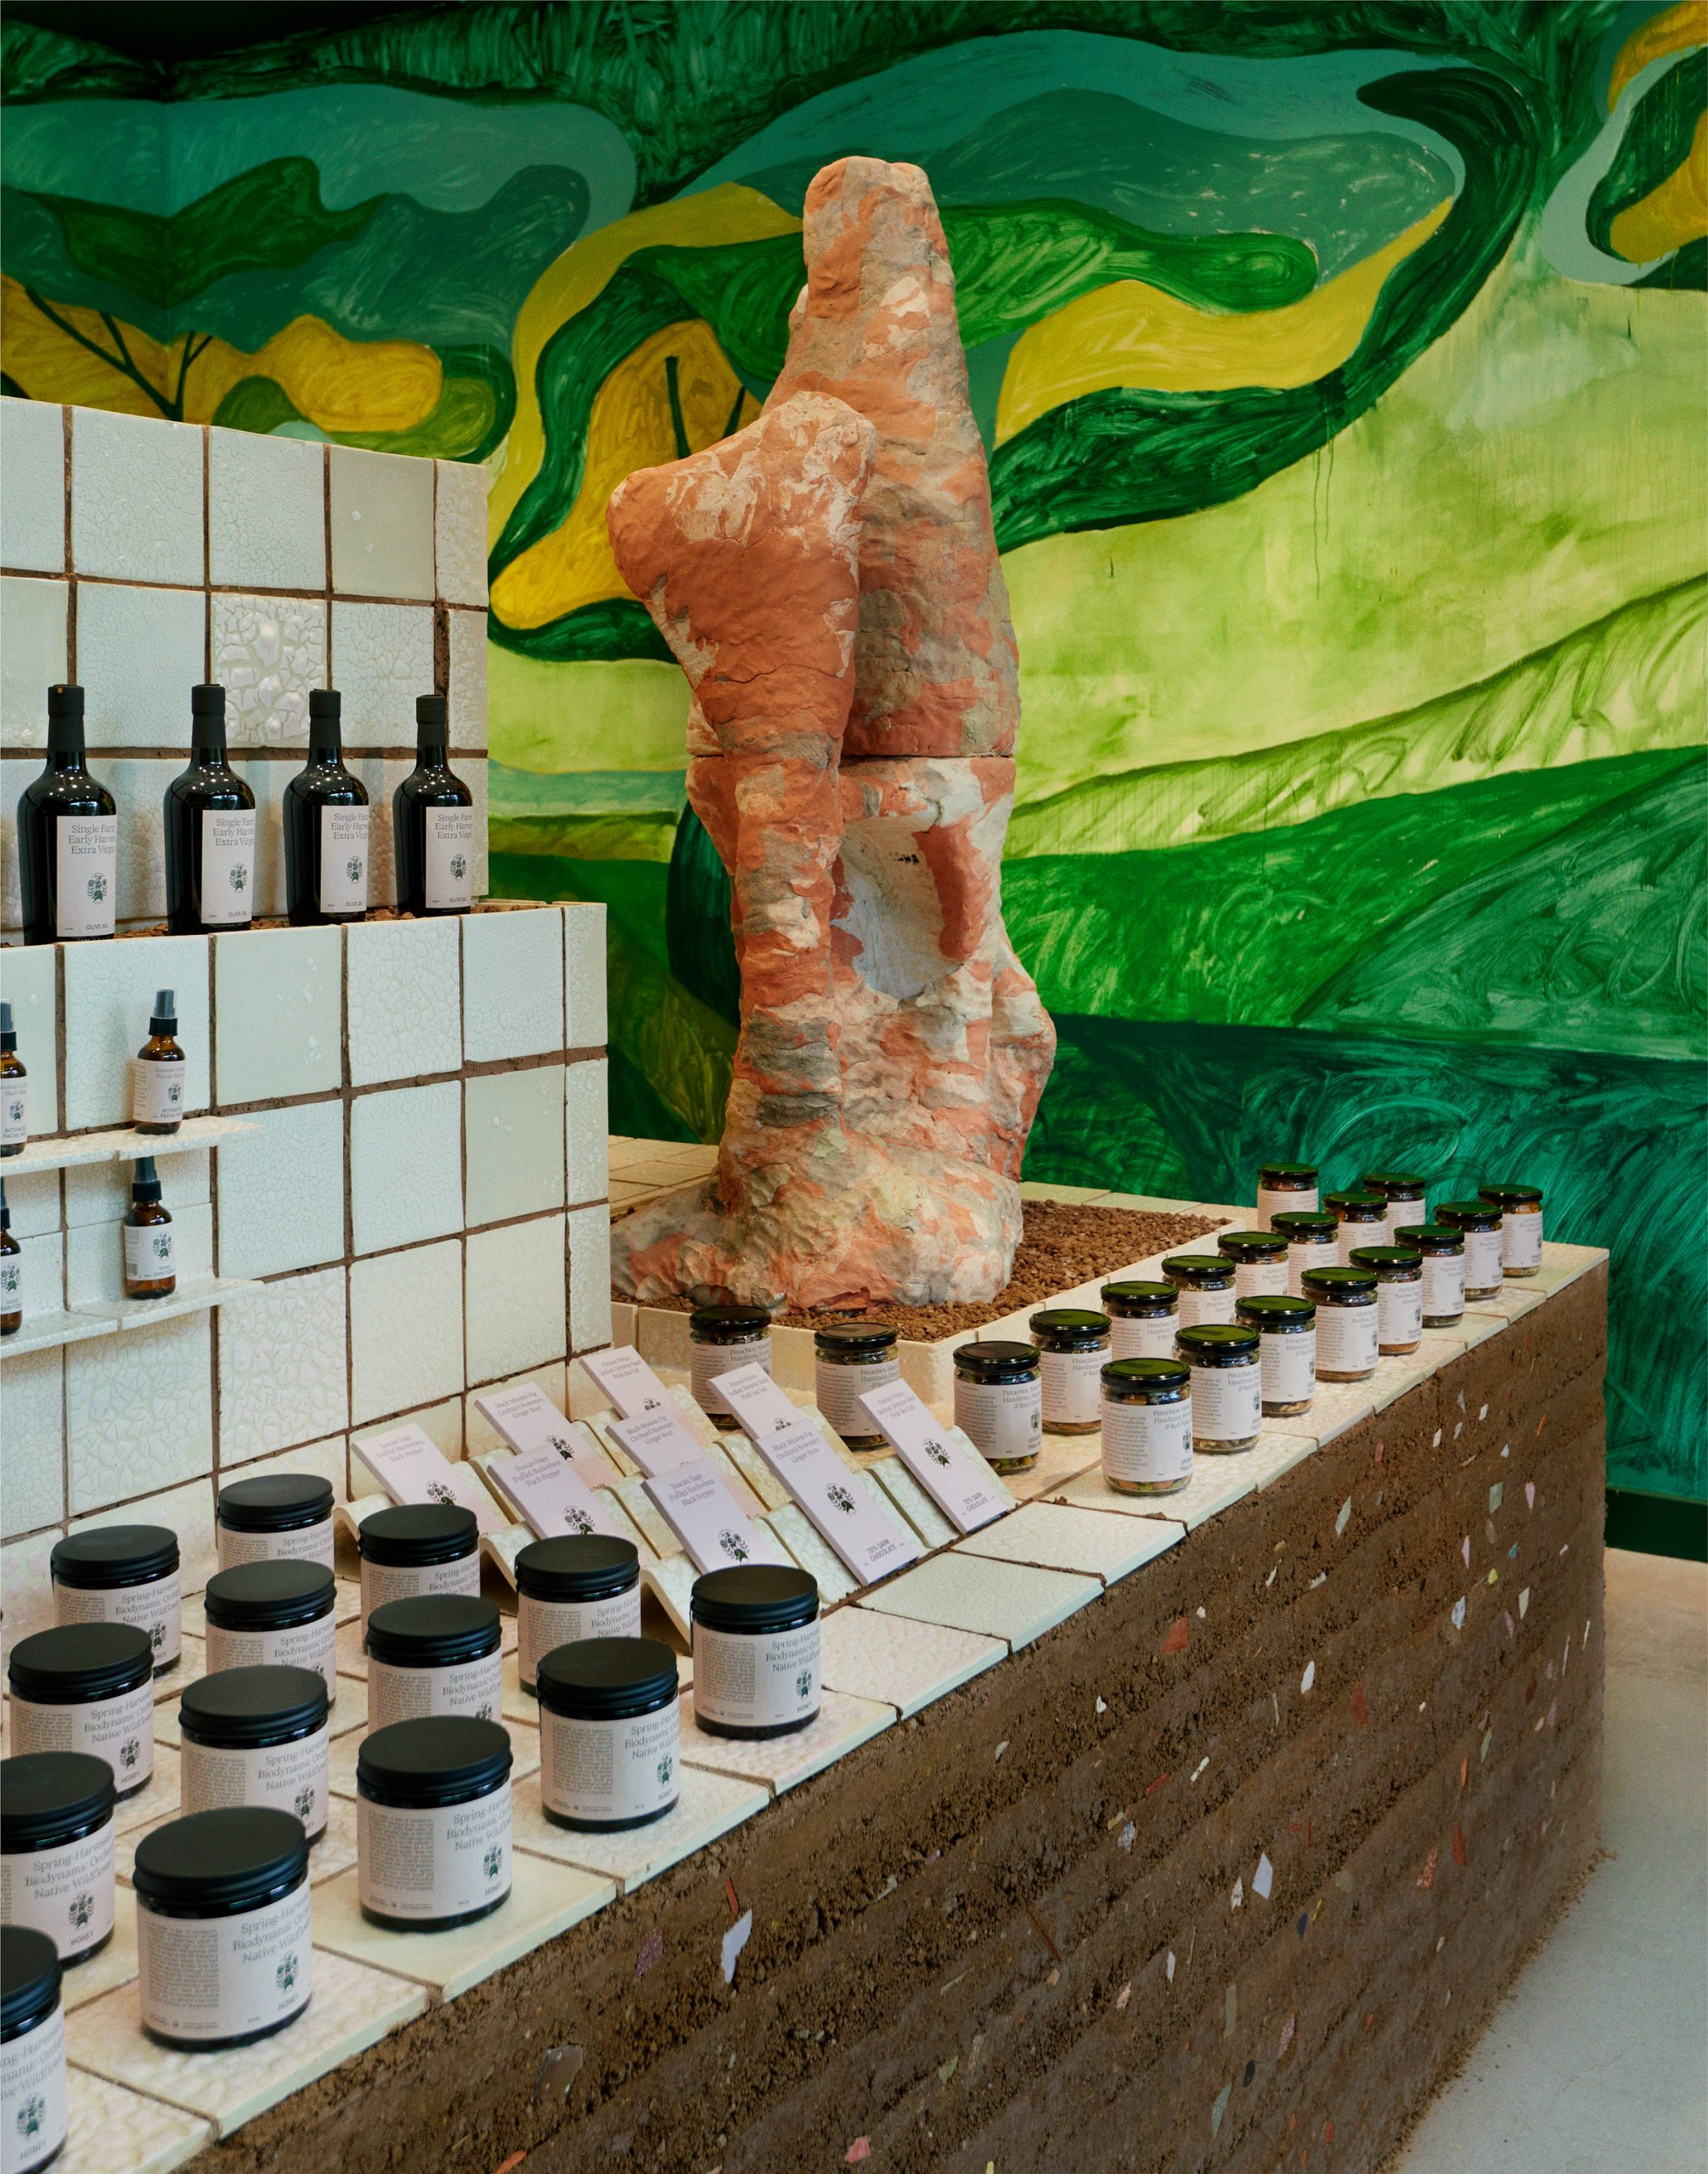 Flamingo Estate's Harvest Shop pop-up features rammed-earth counter